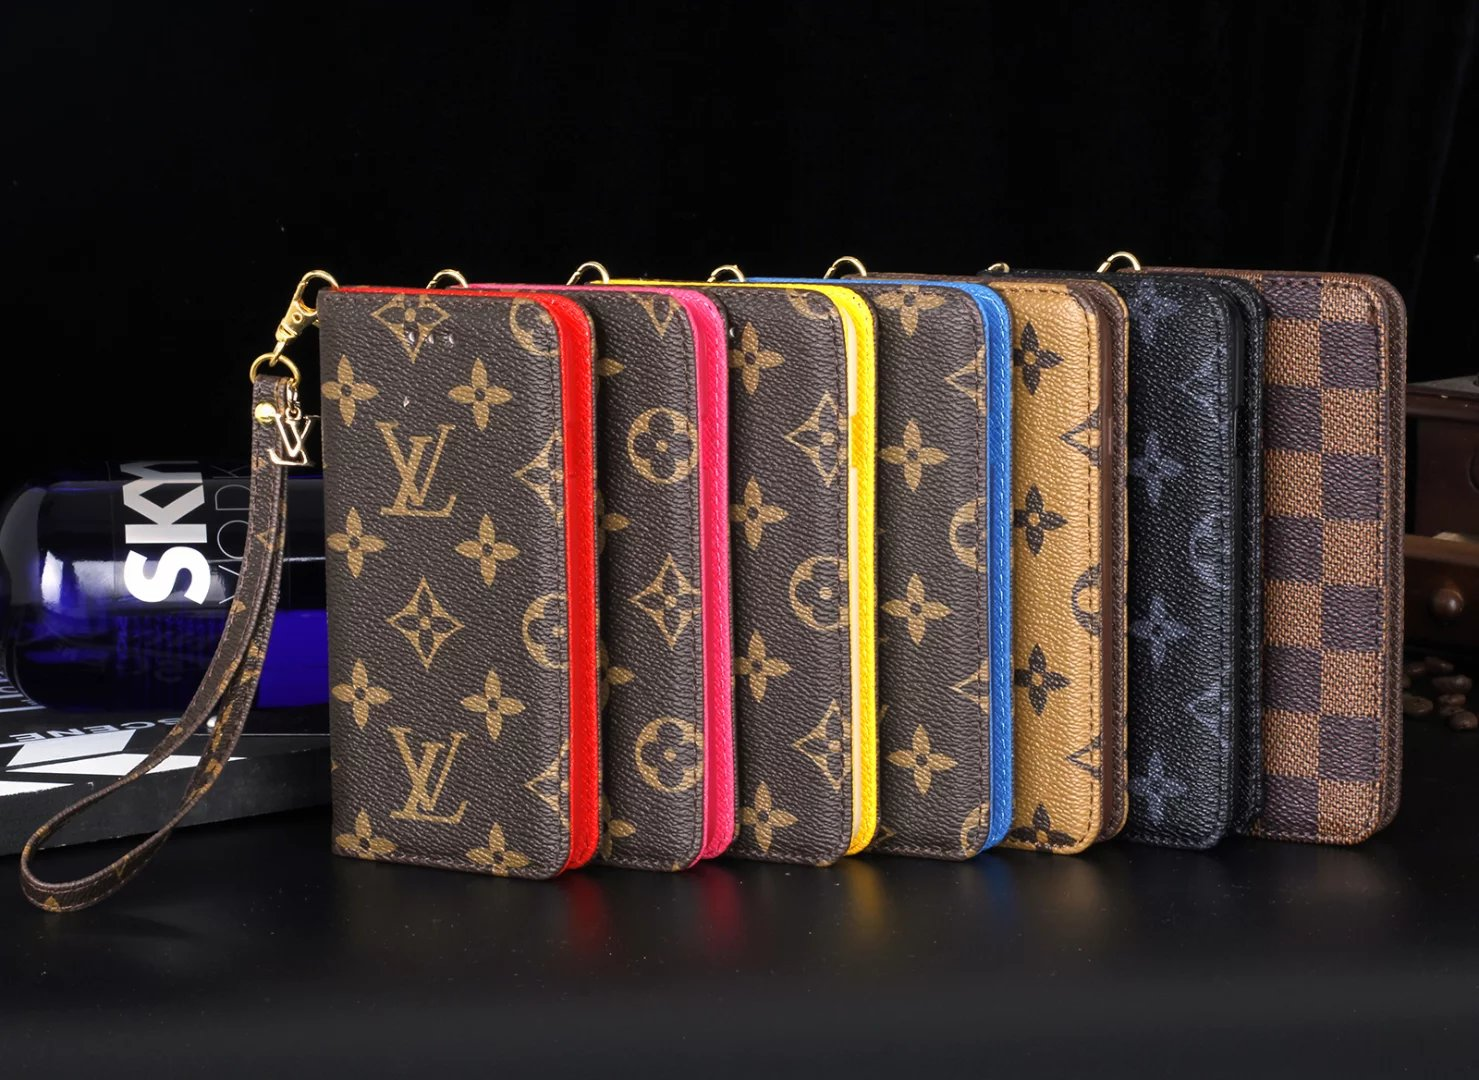 iphone hülle designen iphone case erstellen Louis Vuitton iphone7 Plus hülle tasche iphone 7 Plus iphone 6 iphone 7 Plus displaygröße ausgefallene handyhüllen i phone 7 over durchsichtige hülle iphone 7 Plus